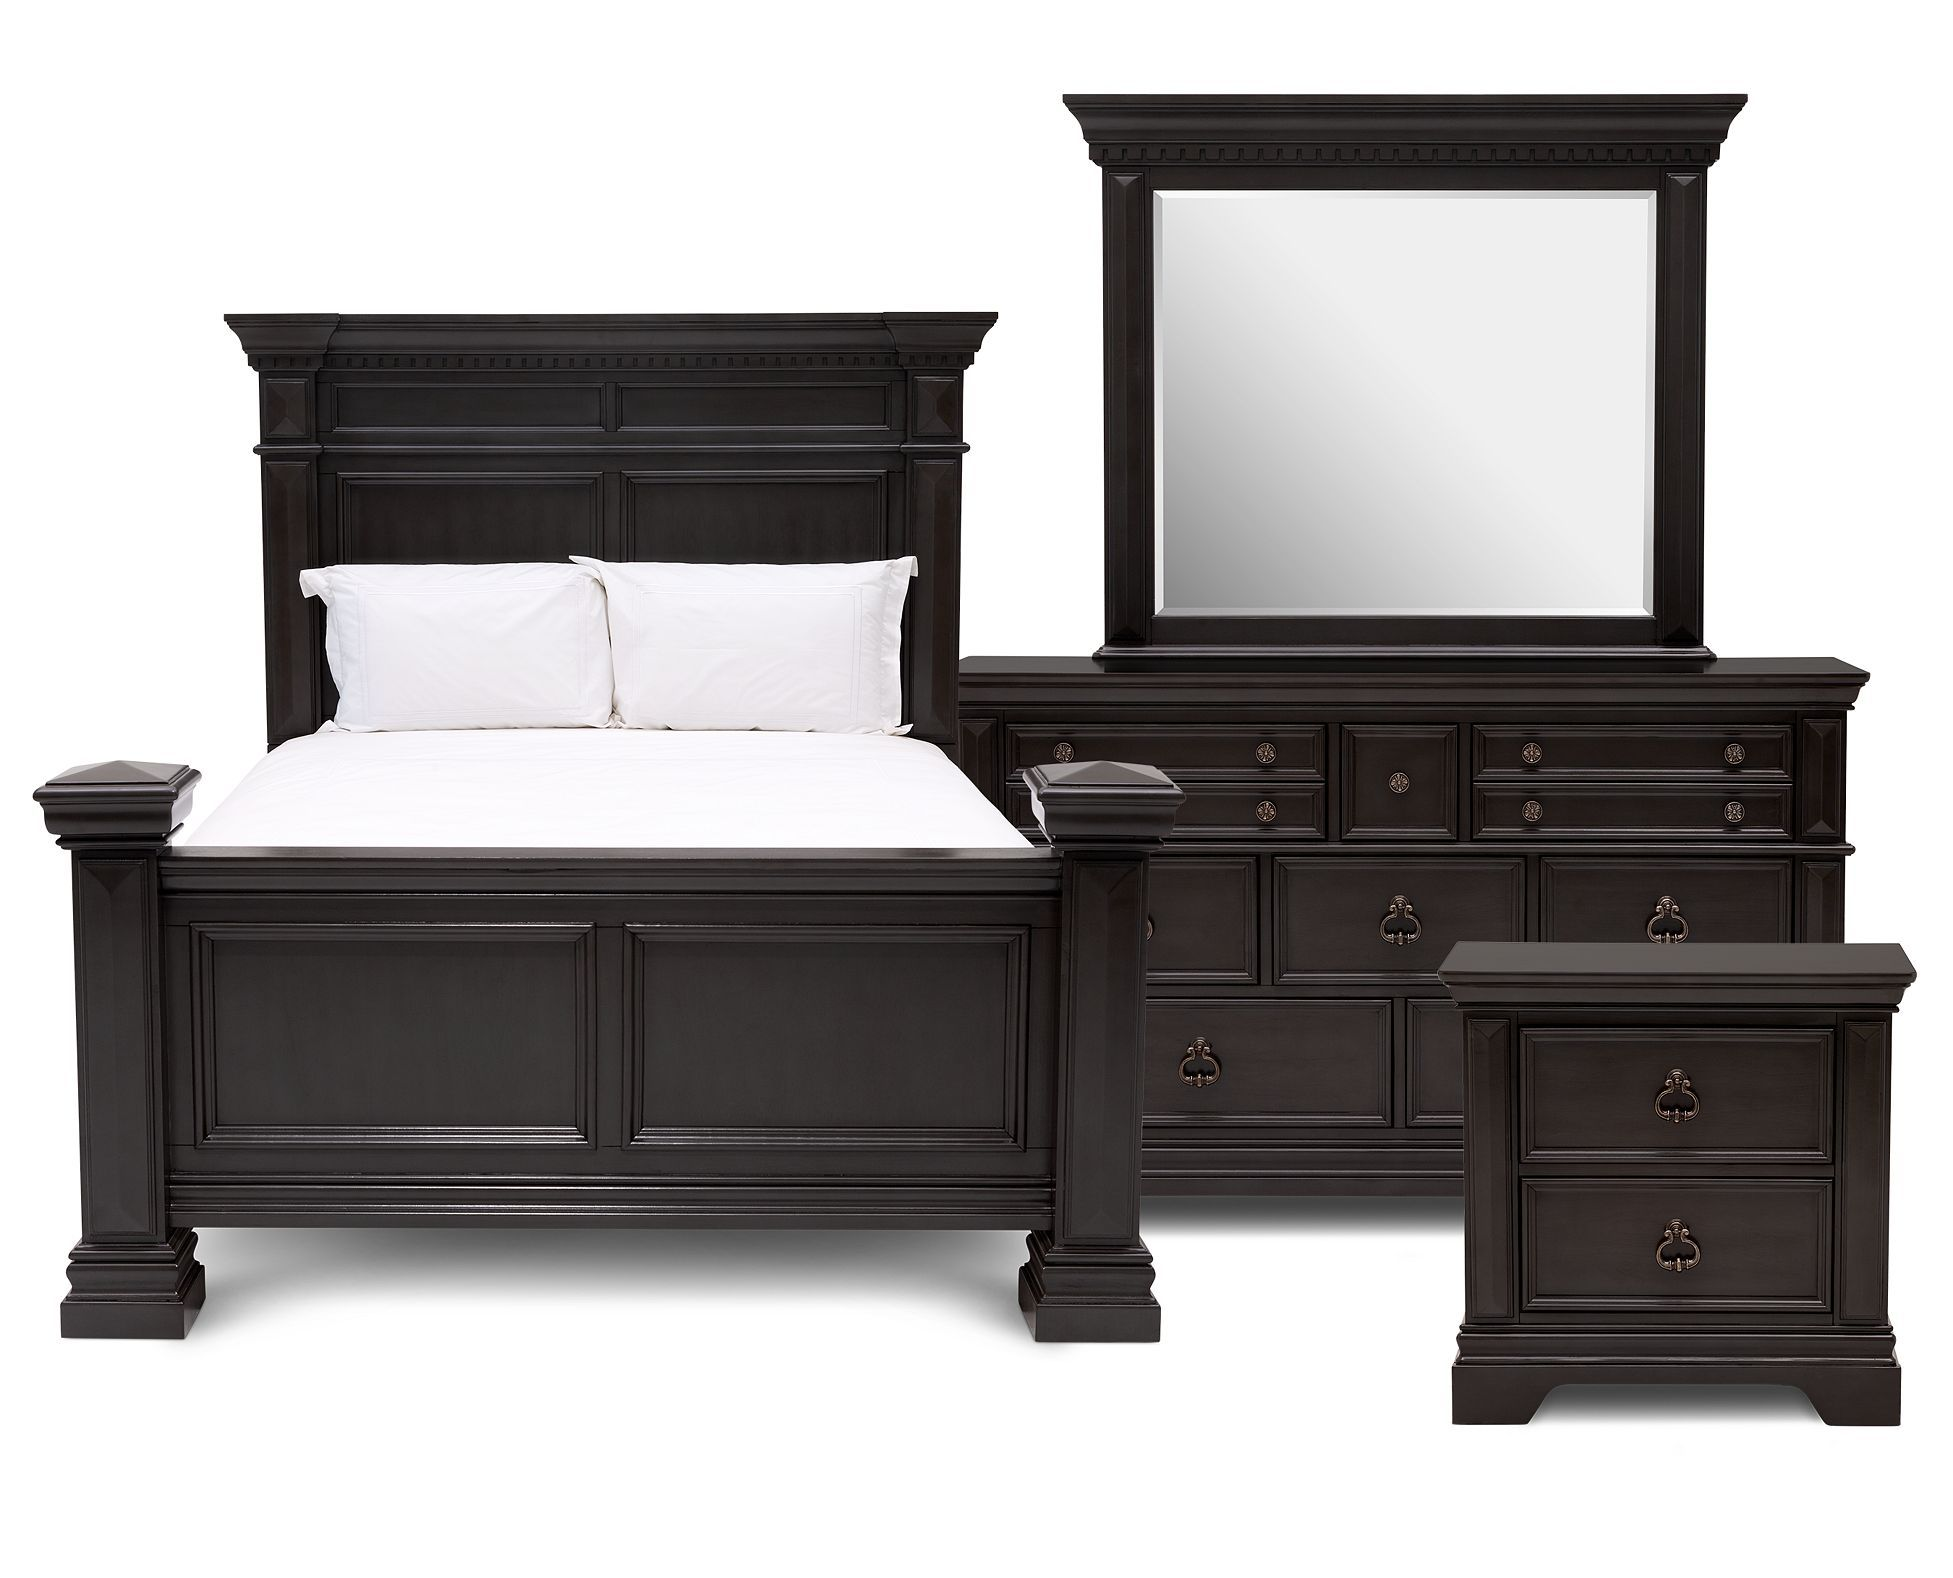 Super Greenhill 4 Pc Bedroom Set Furniture Row Lets Decorate Download Free Architecture Designs Scobabritishbridgeorg